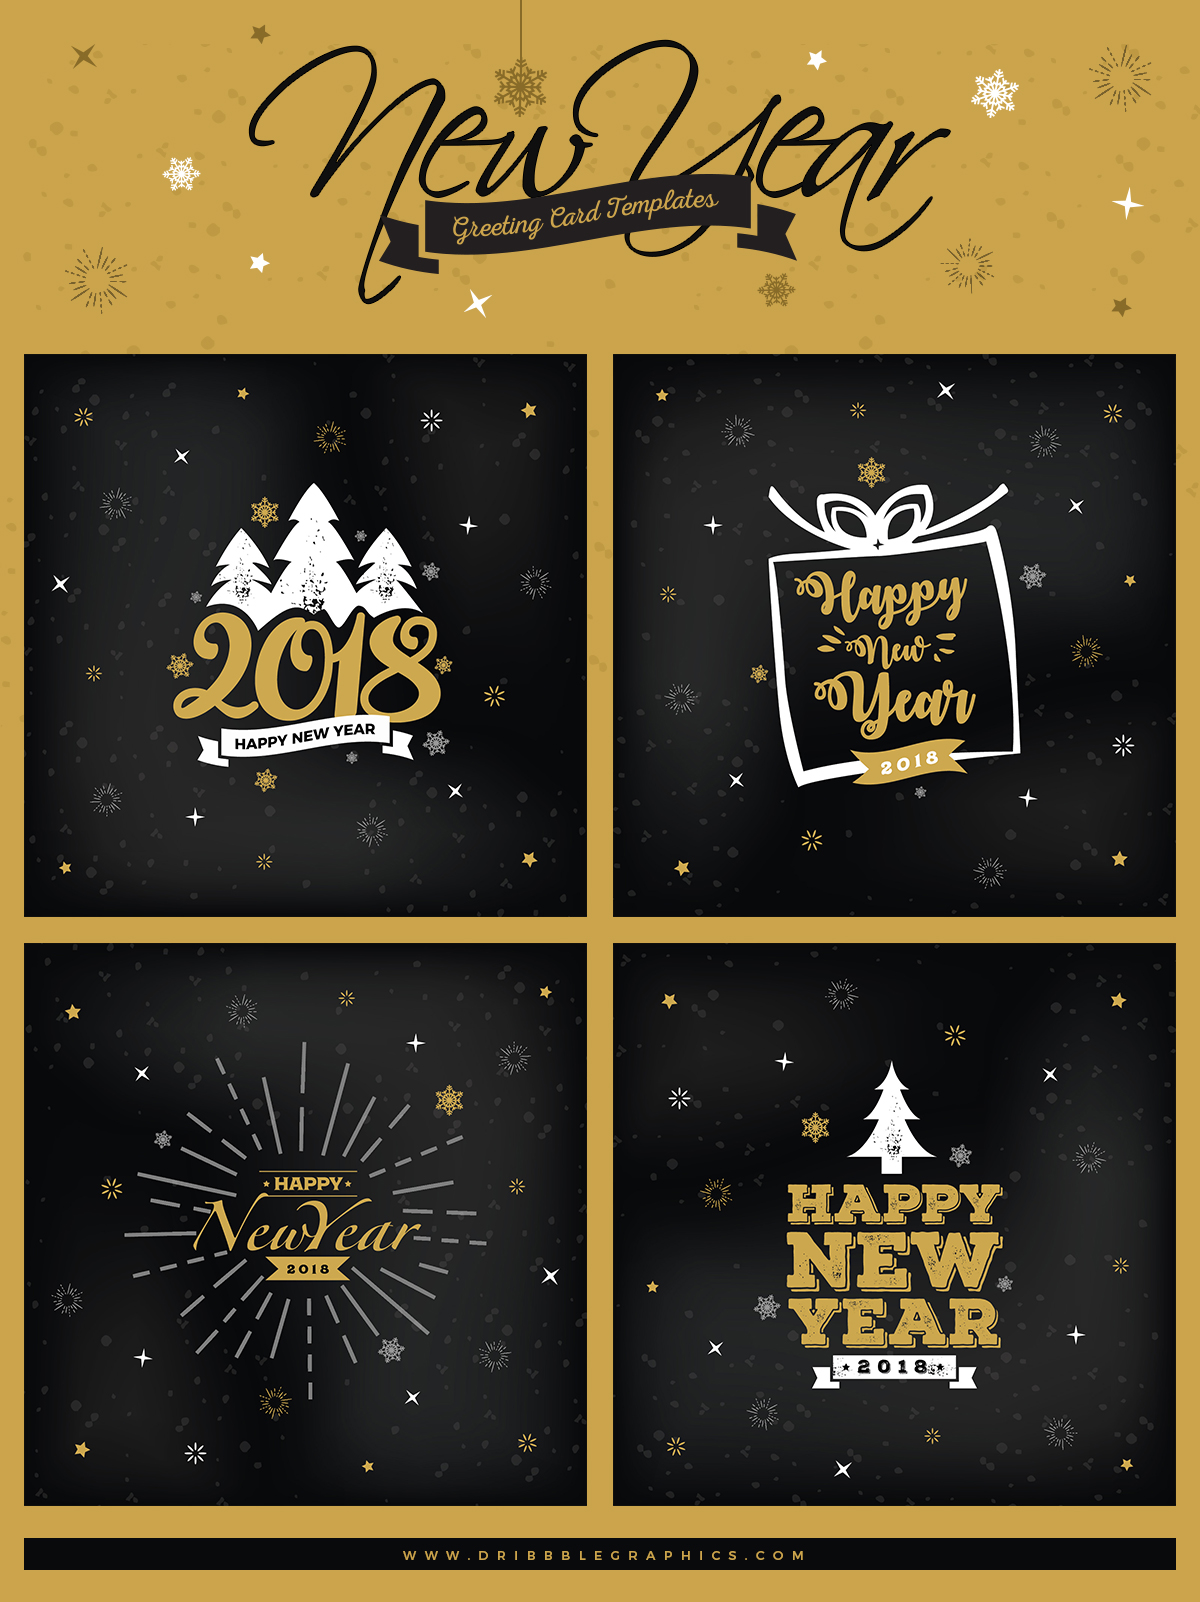 4-Free-New-Year-Greeting-Card-Templates